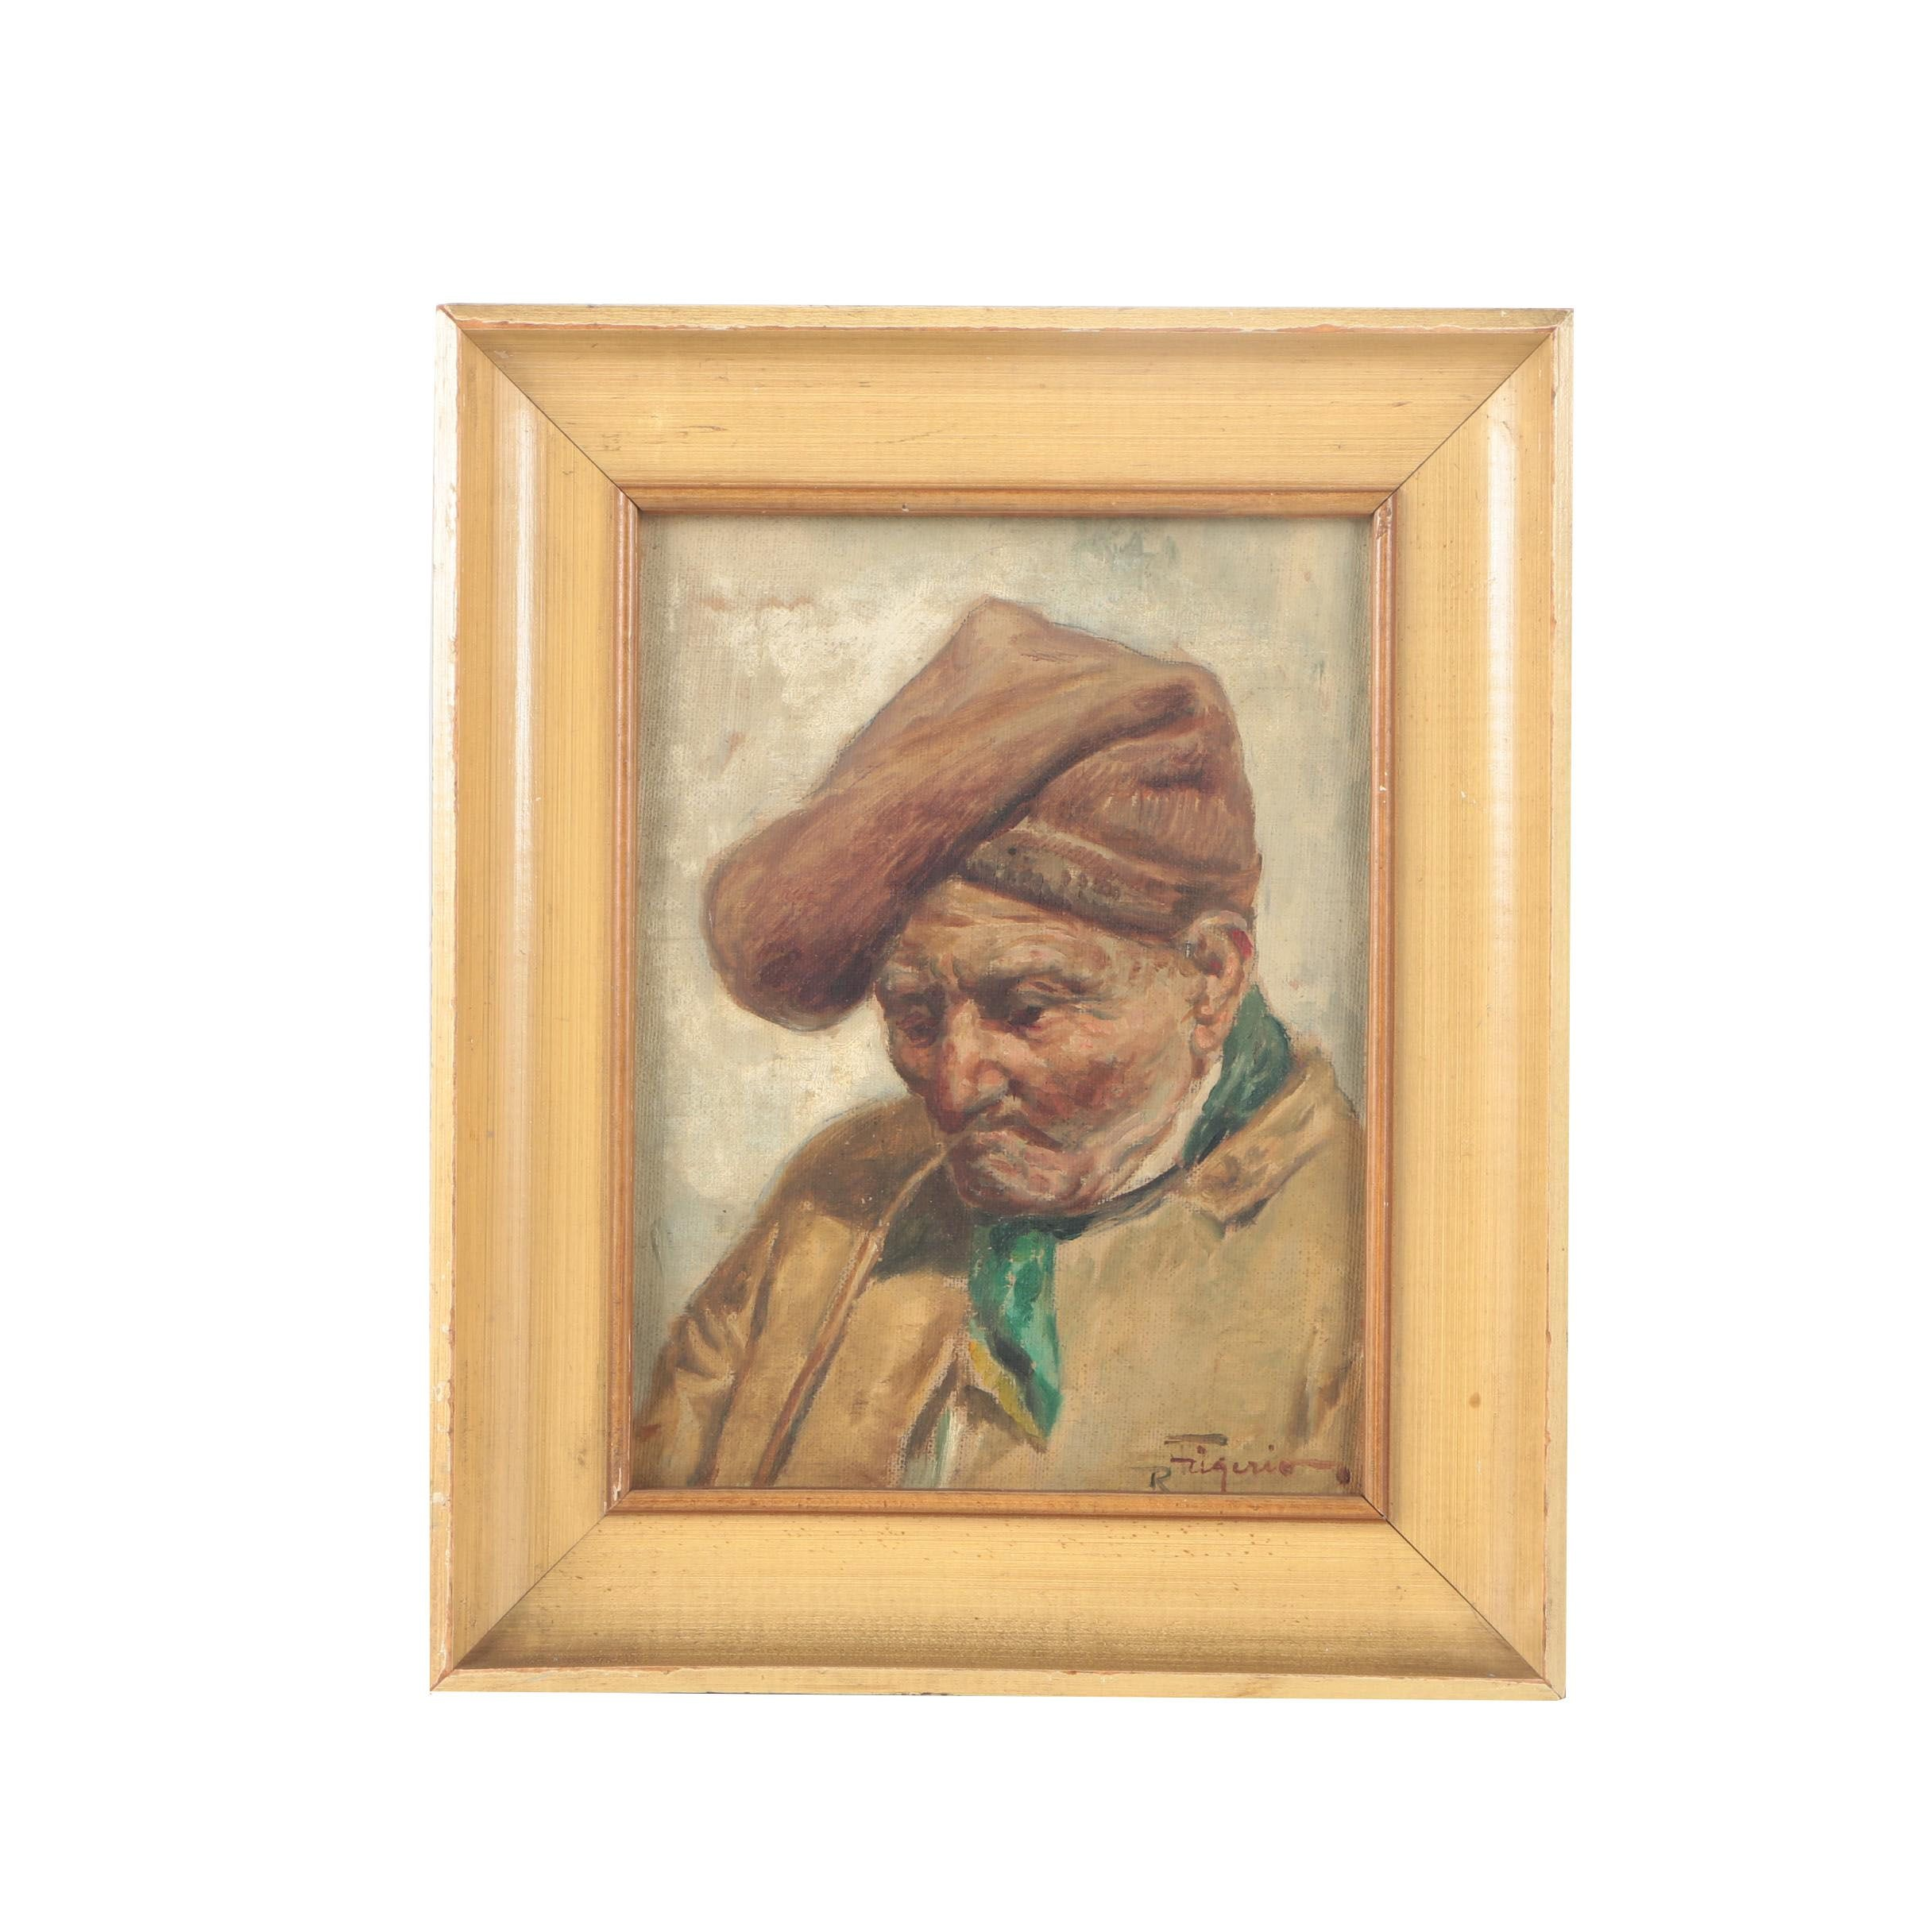 Roberto Figerio Oil Portrait on Canvas of a Peasant Man